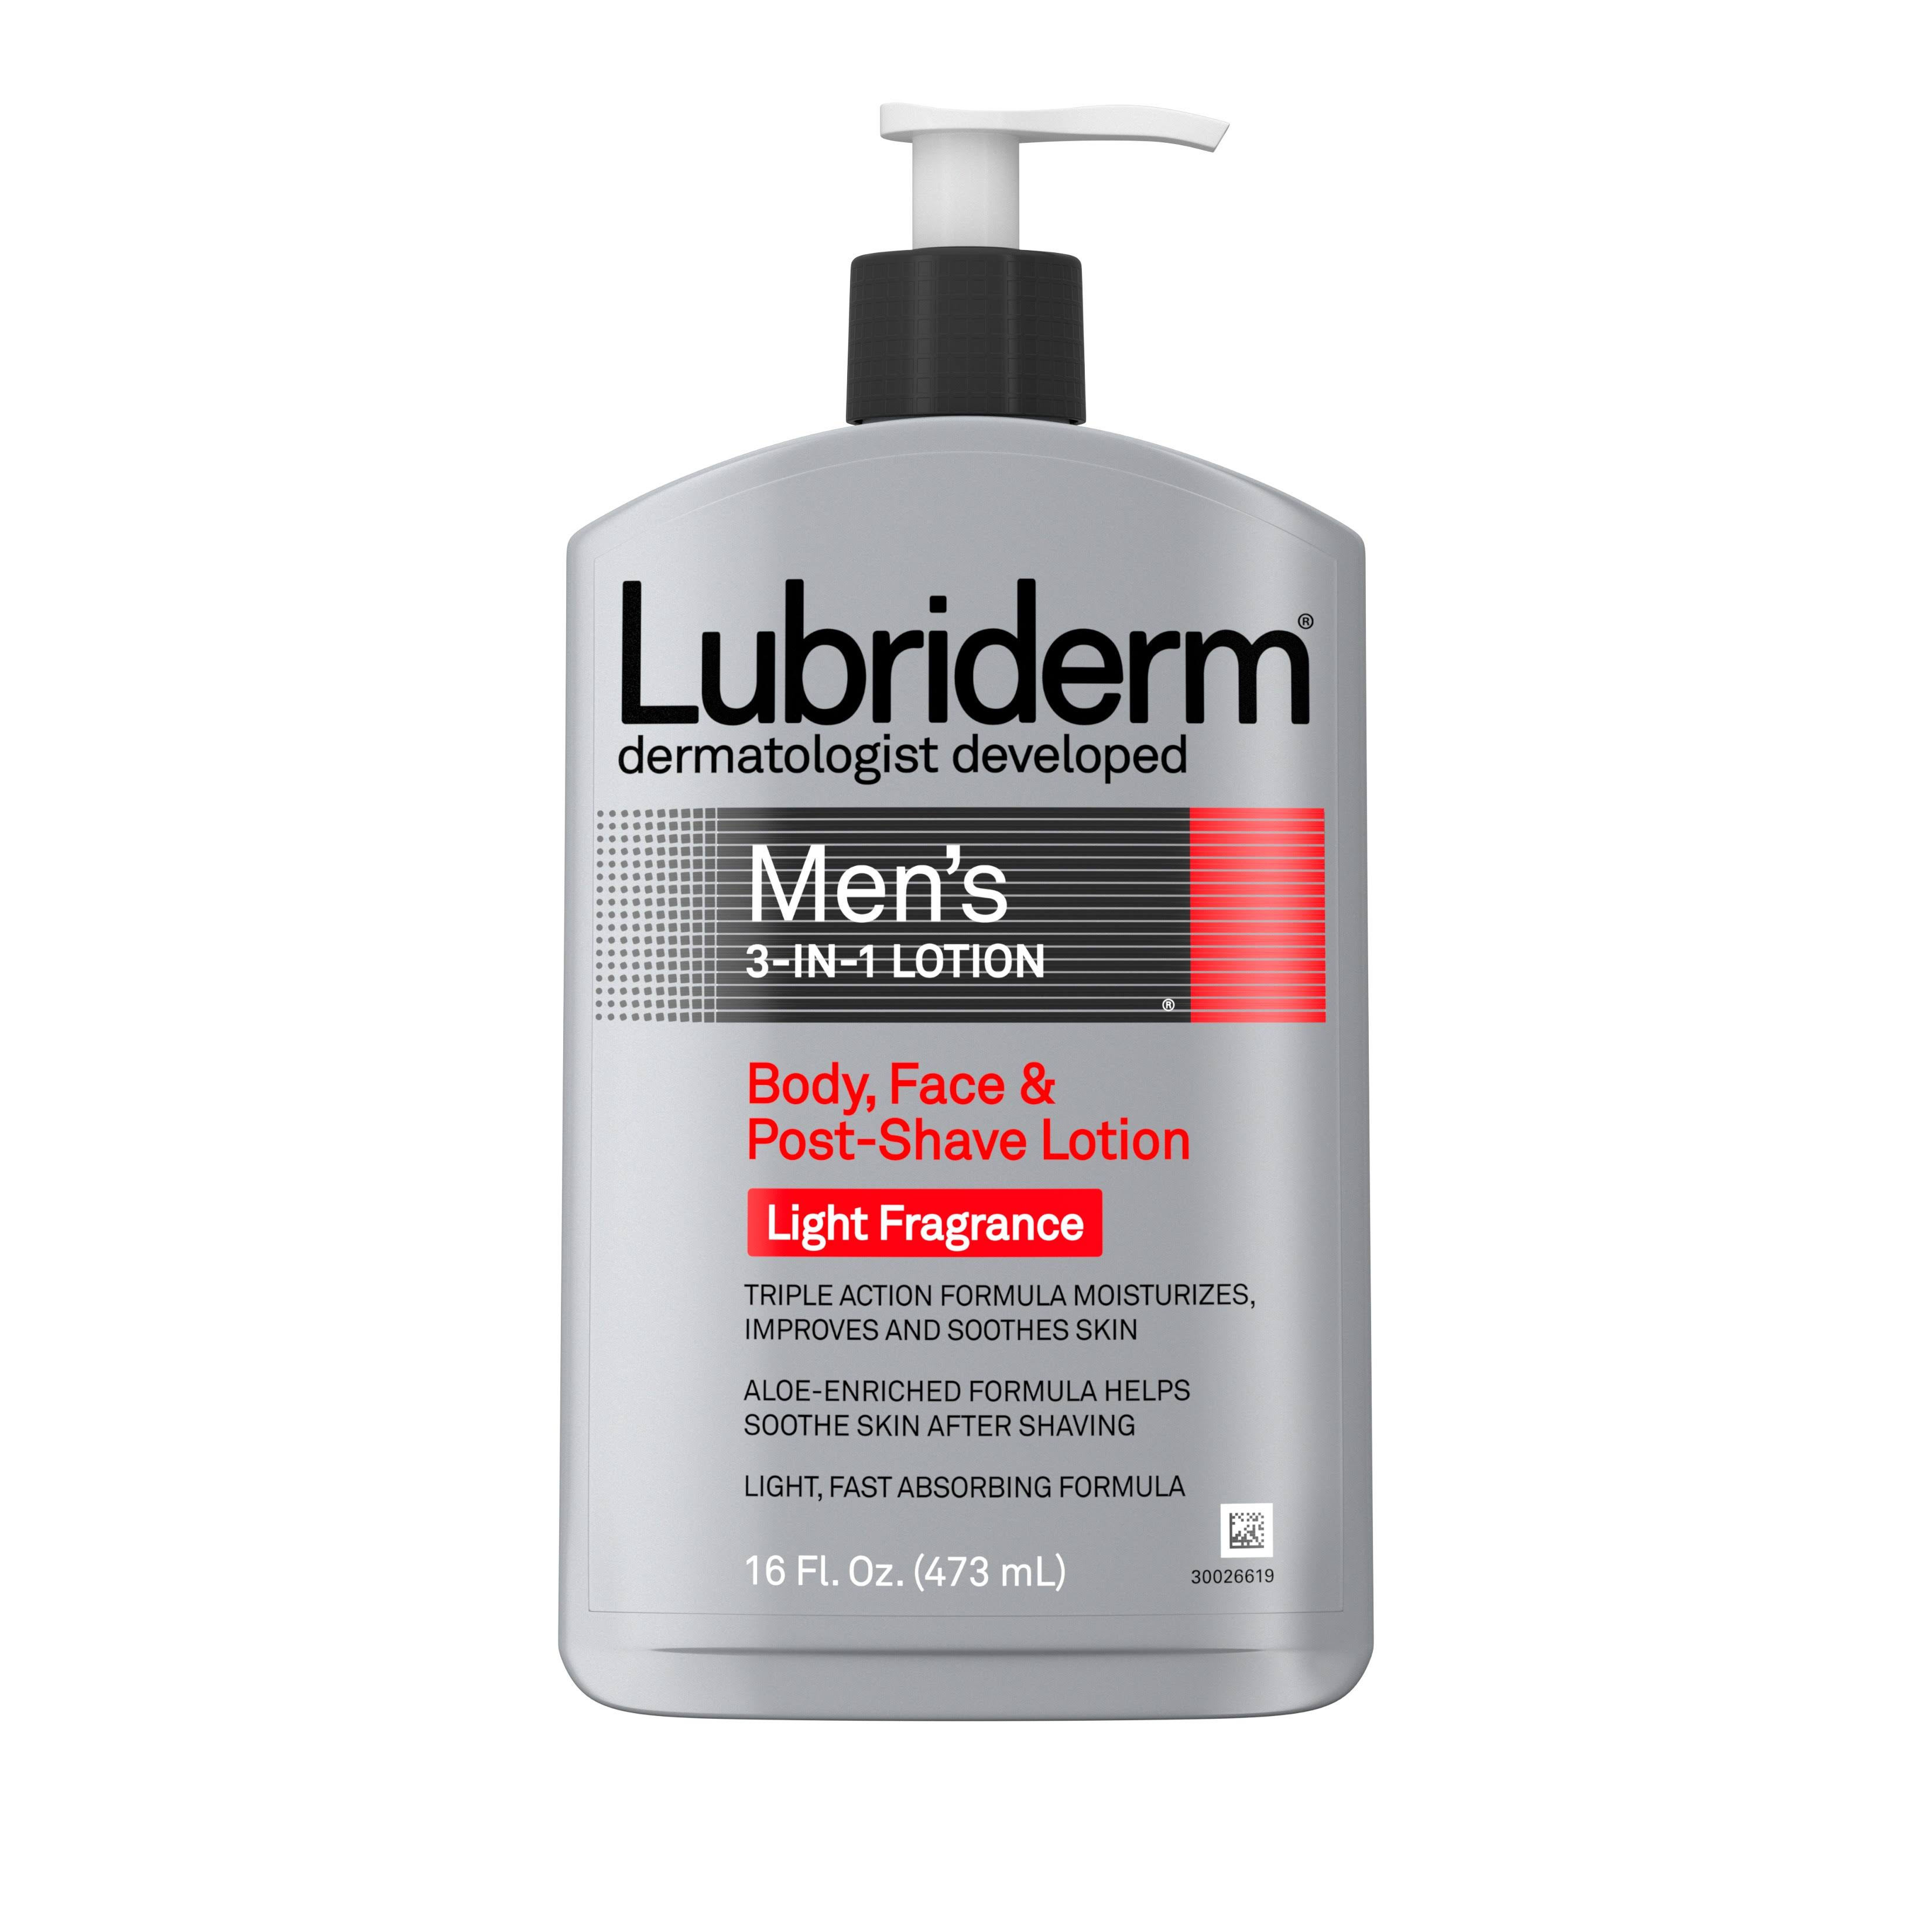 Lubriderm Men's 3 in 1 Lotion with Light Fragrance - 16oz